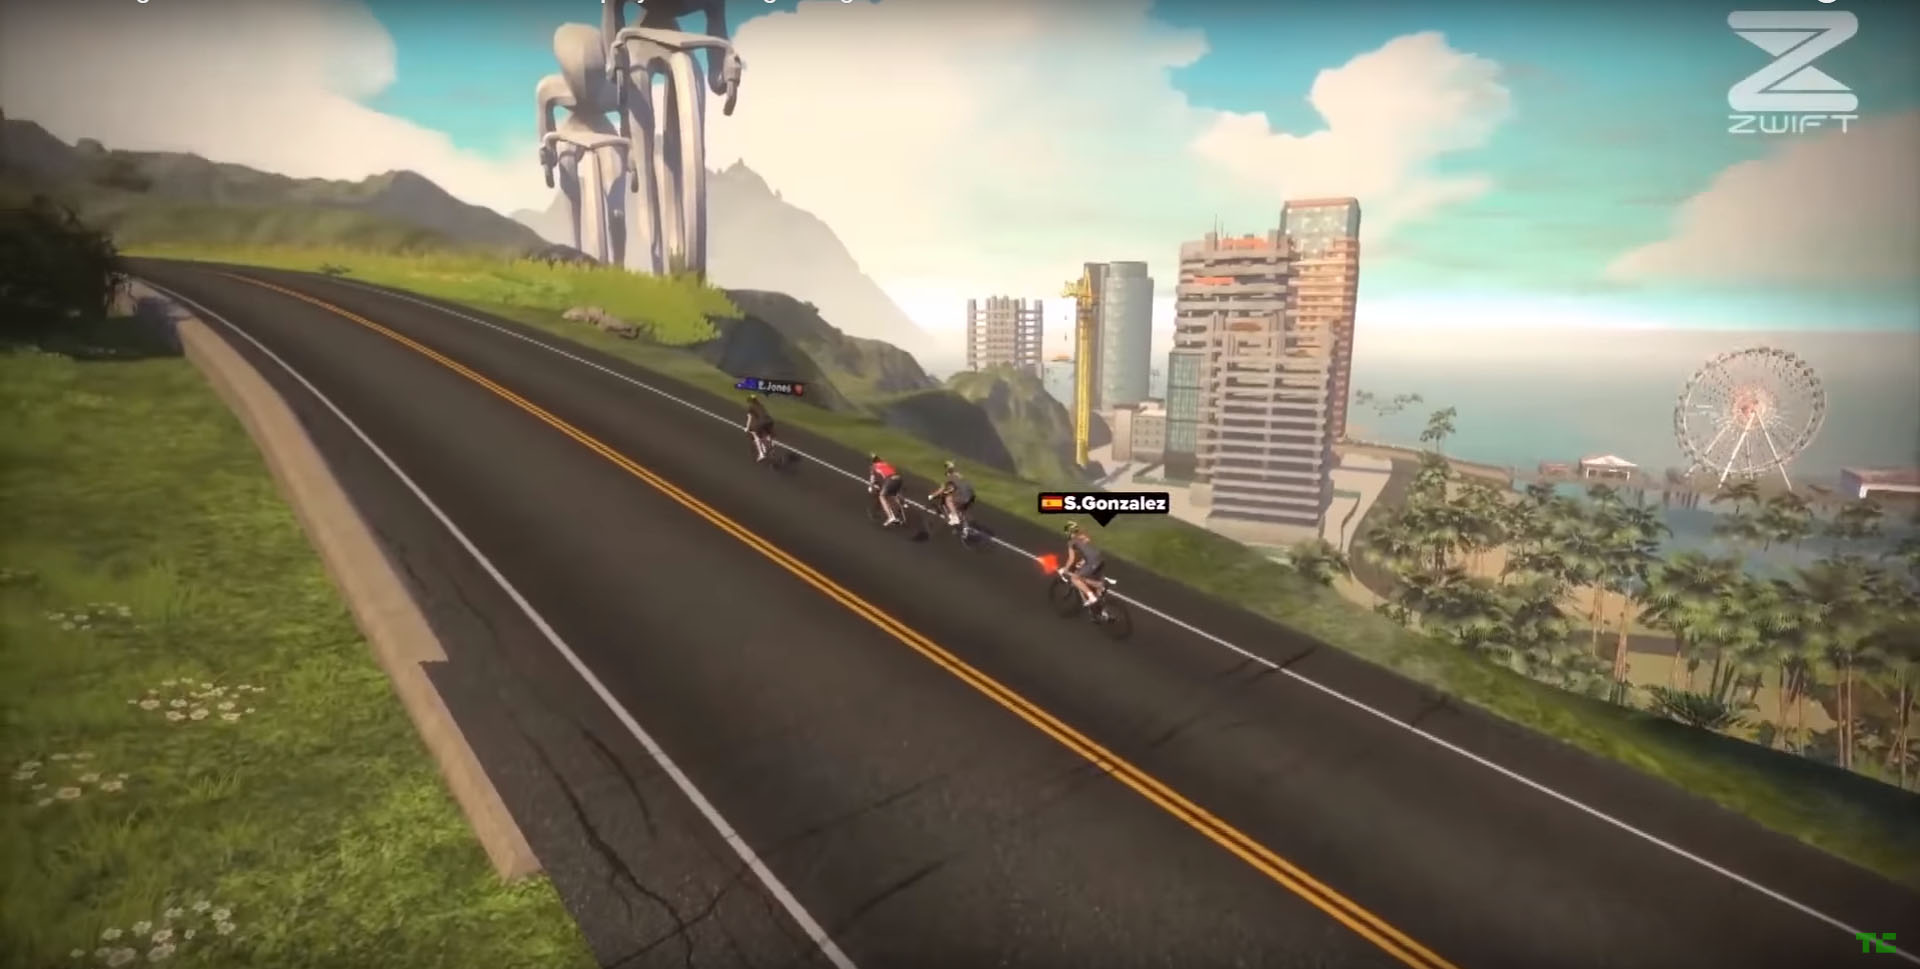 Zwift Is a Massive Multi-Player Online Game You Play with